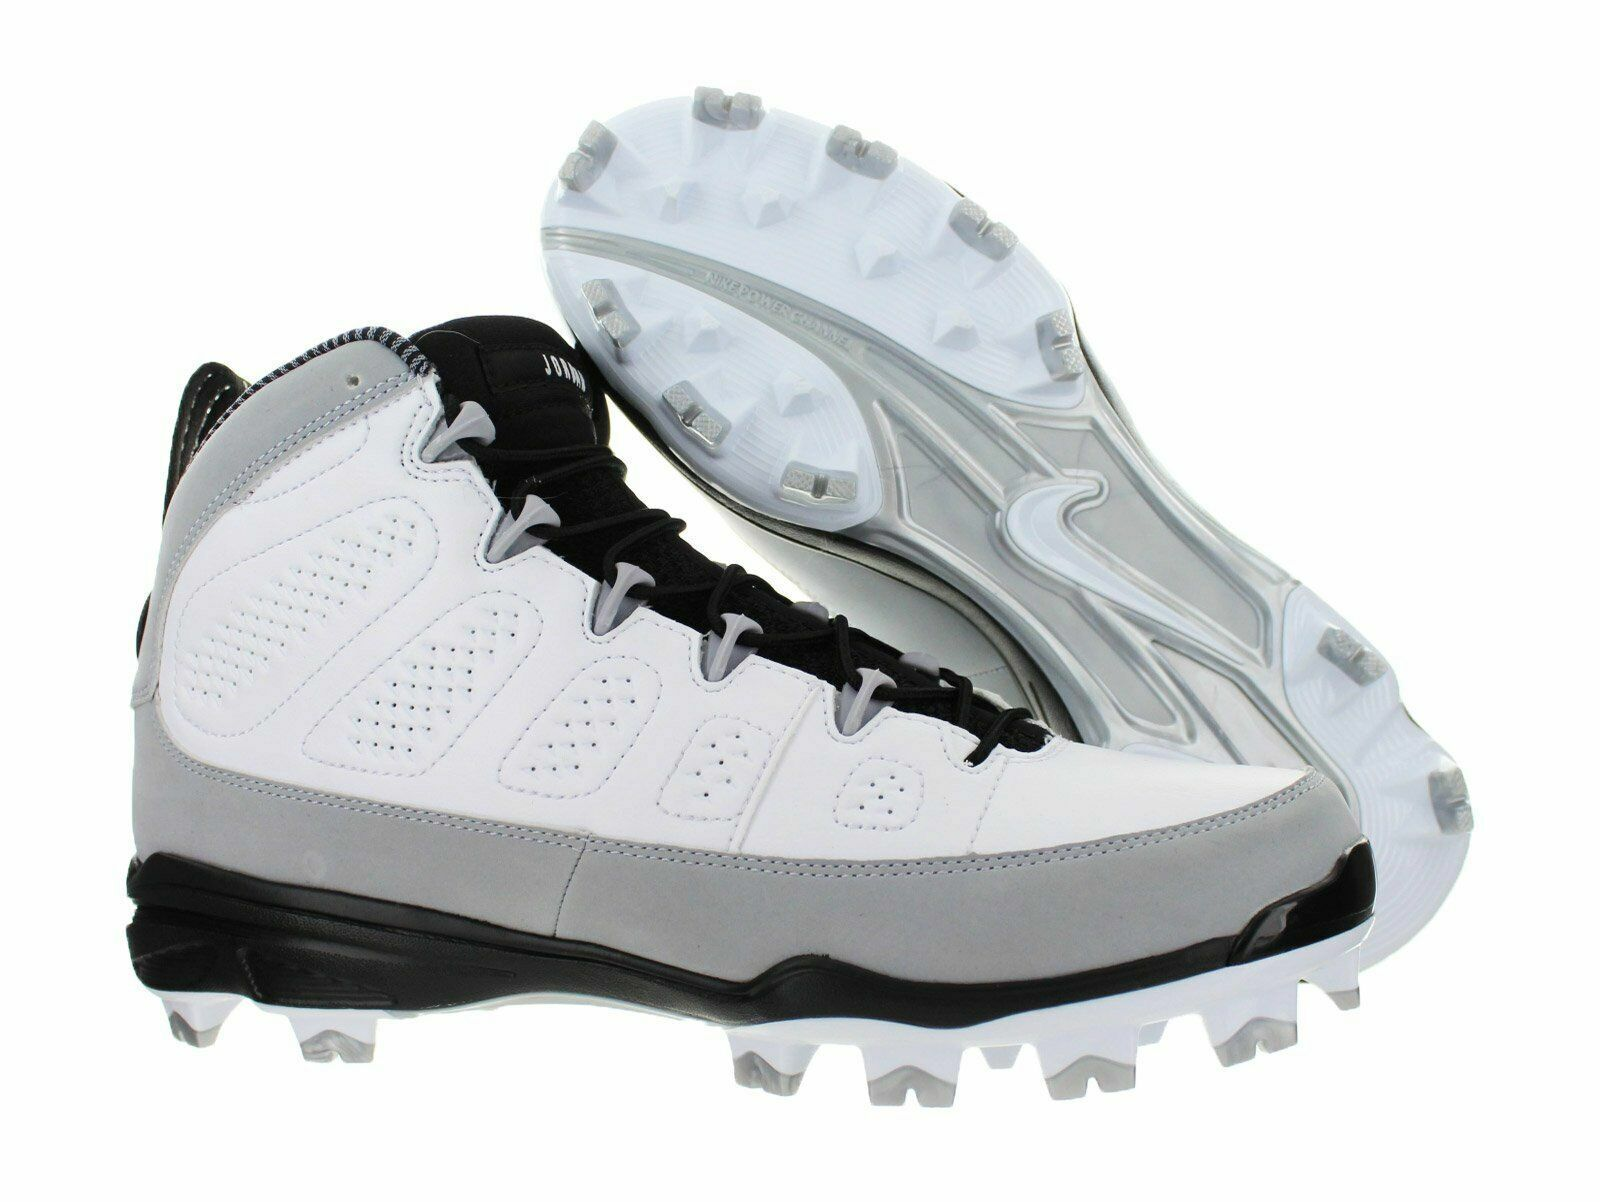 new style 80a08 82a7d RE2PECT Jordan IX 9 MCS Retro Baseball Cleats Derek Jeter Yankees Grey Wolf  nkbytr9597-Athletic Shoes